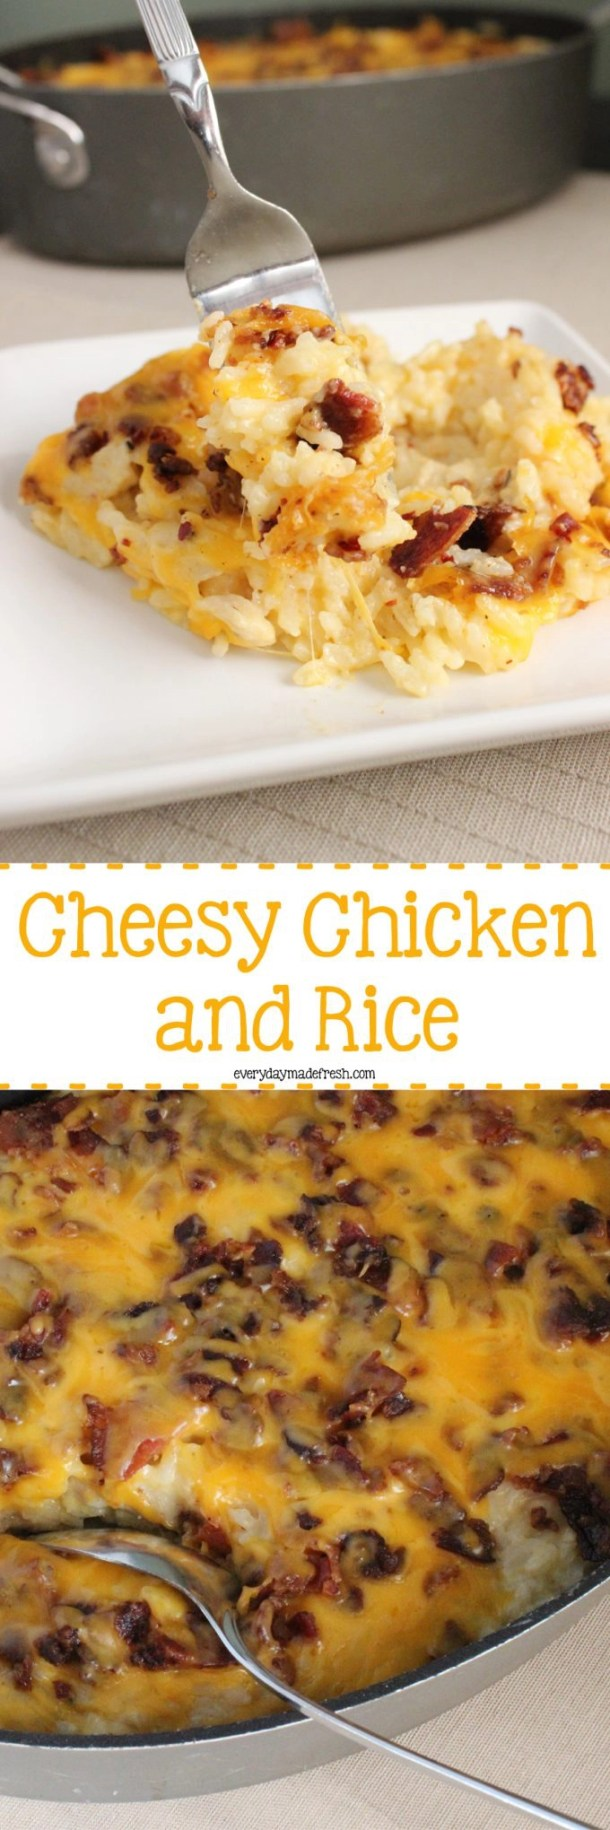 Crispy bacon, a cheesy sauce, chunks of chicken - this Cheesy Chicken and Rice is the ultimate in comfort food! | EverydayMadeFresh.com